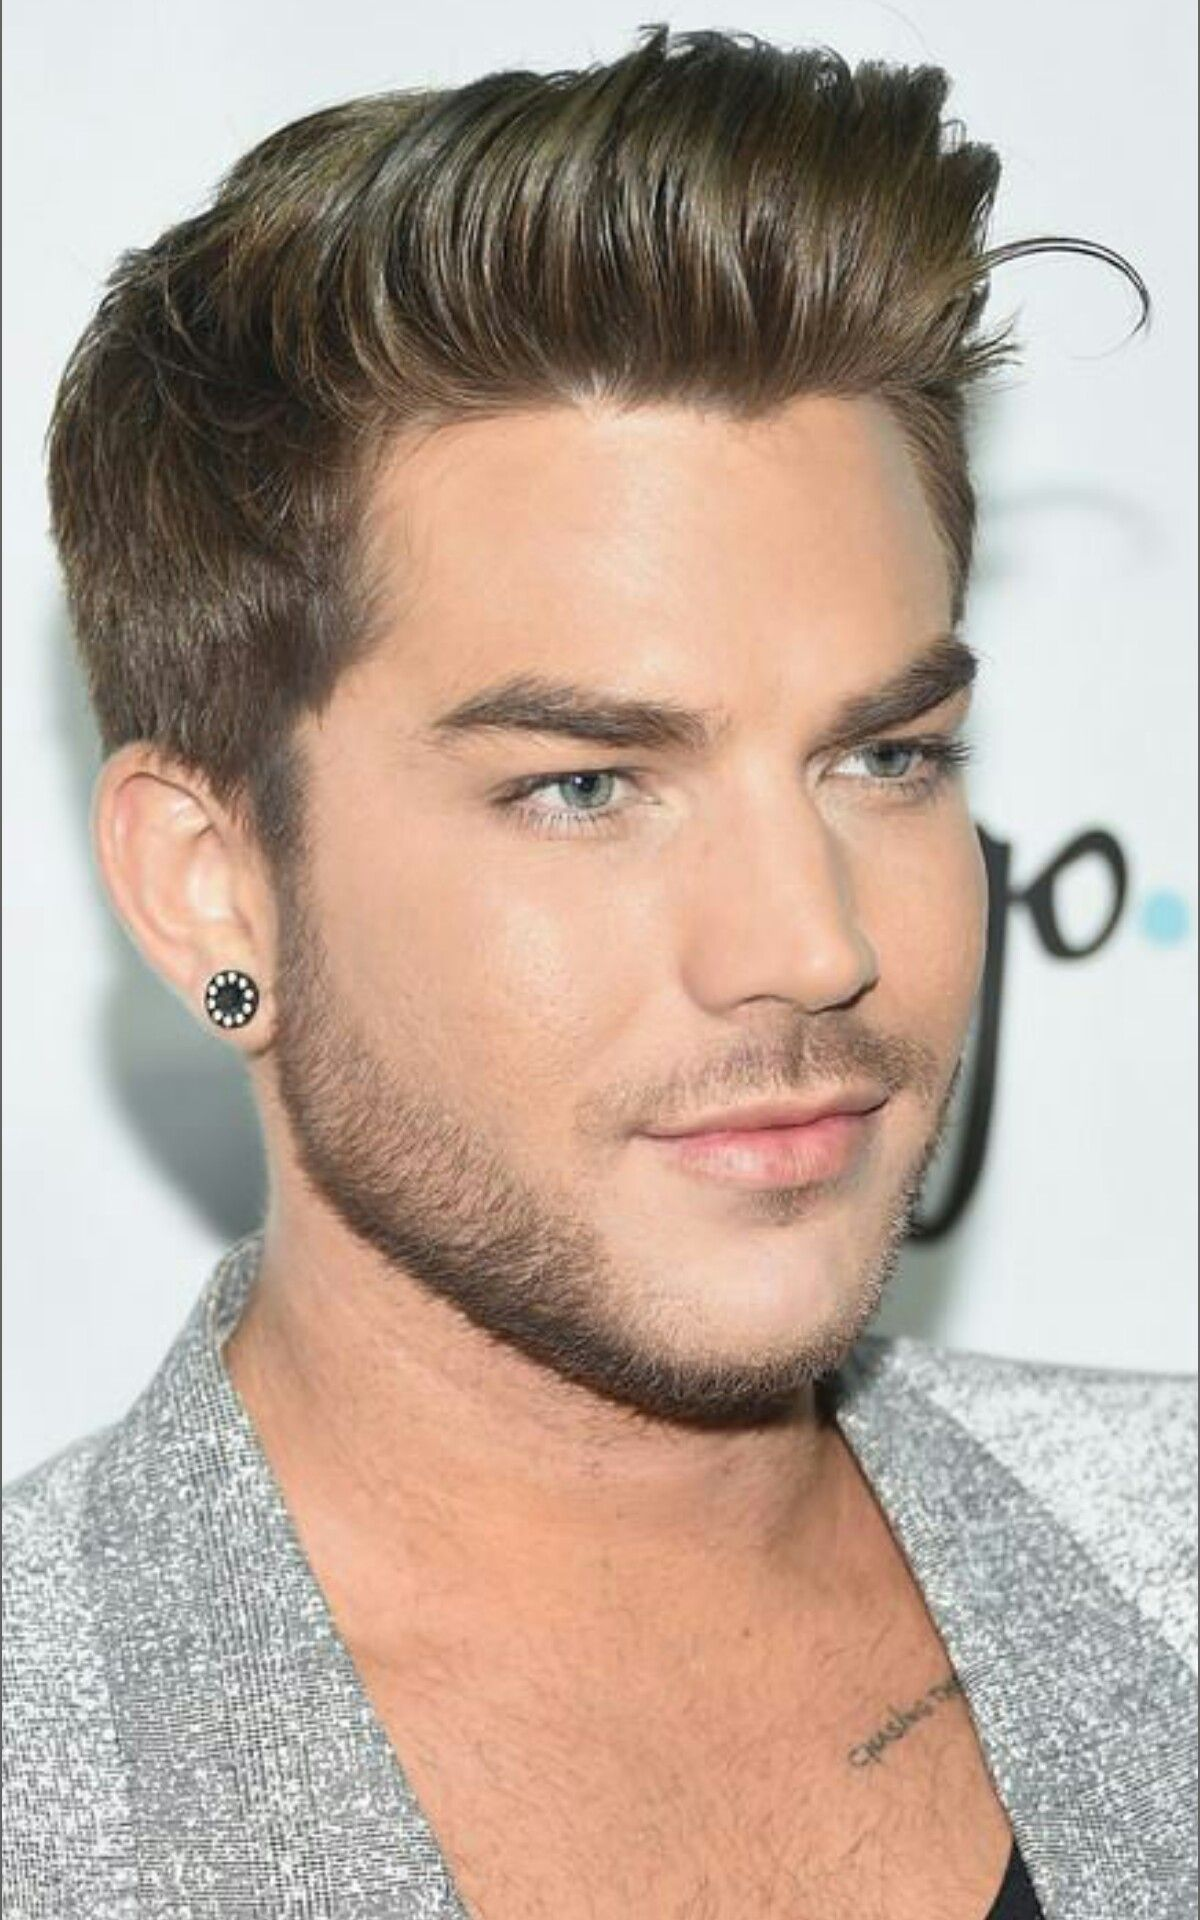 to wear - Lambert Adam blonde hair pictures video